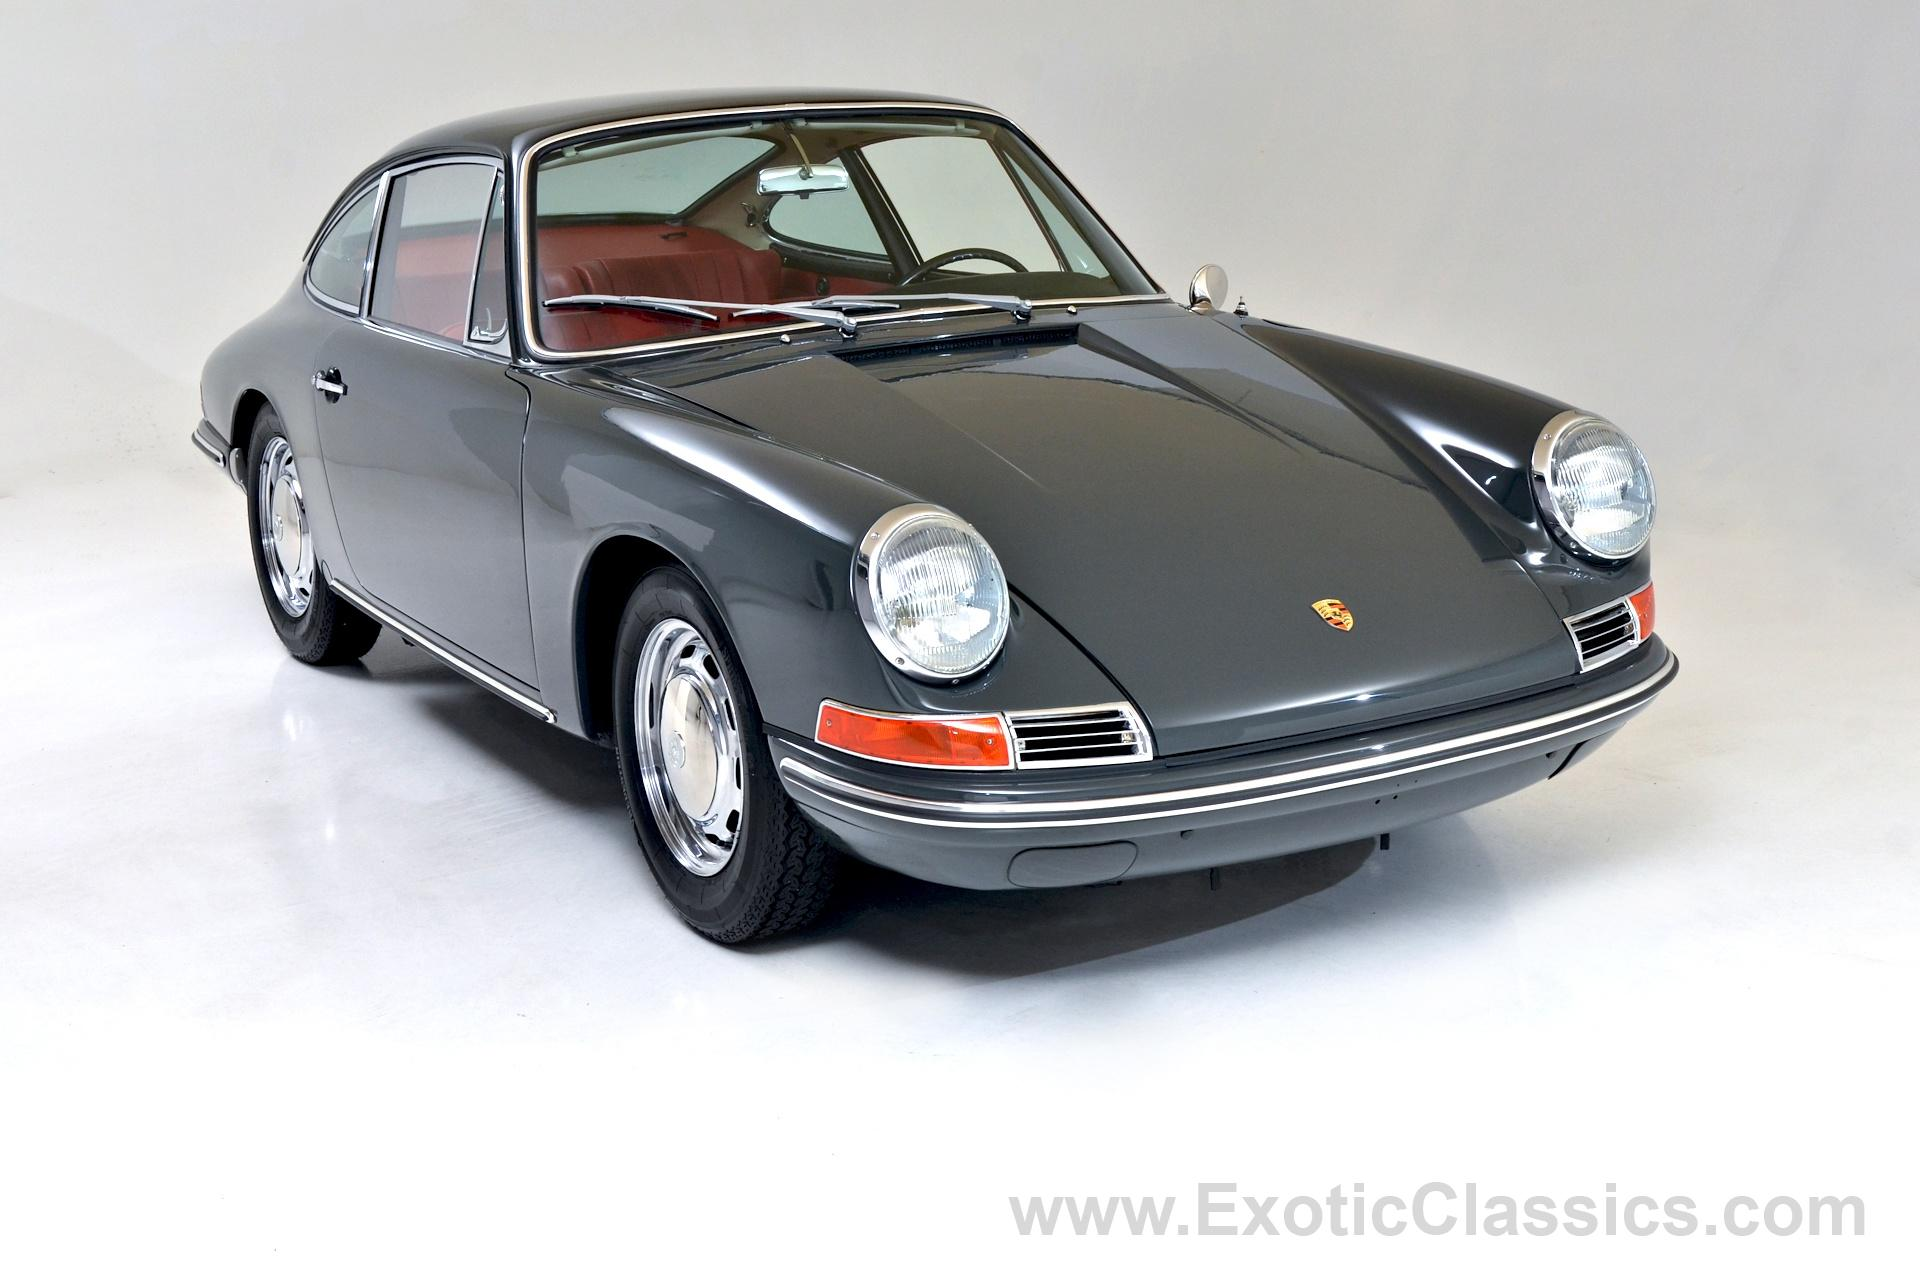 1967 Porsche 912 Coupe Exotic Classic Car Dealership New